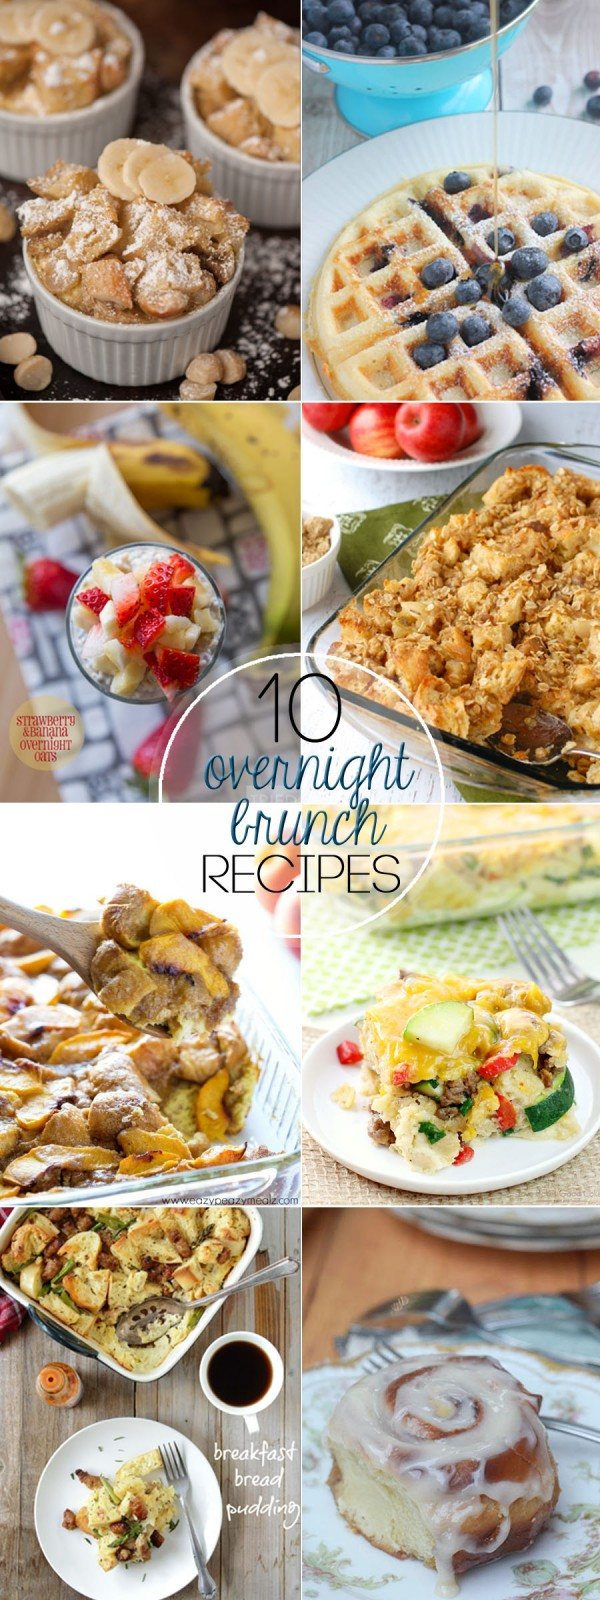 10 Overnight Brunch Recipes